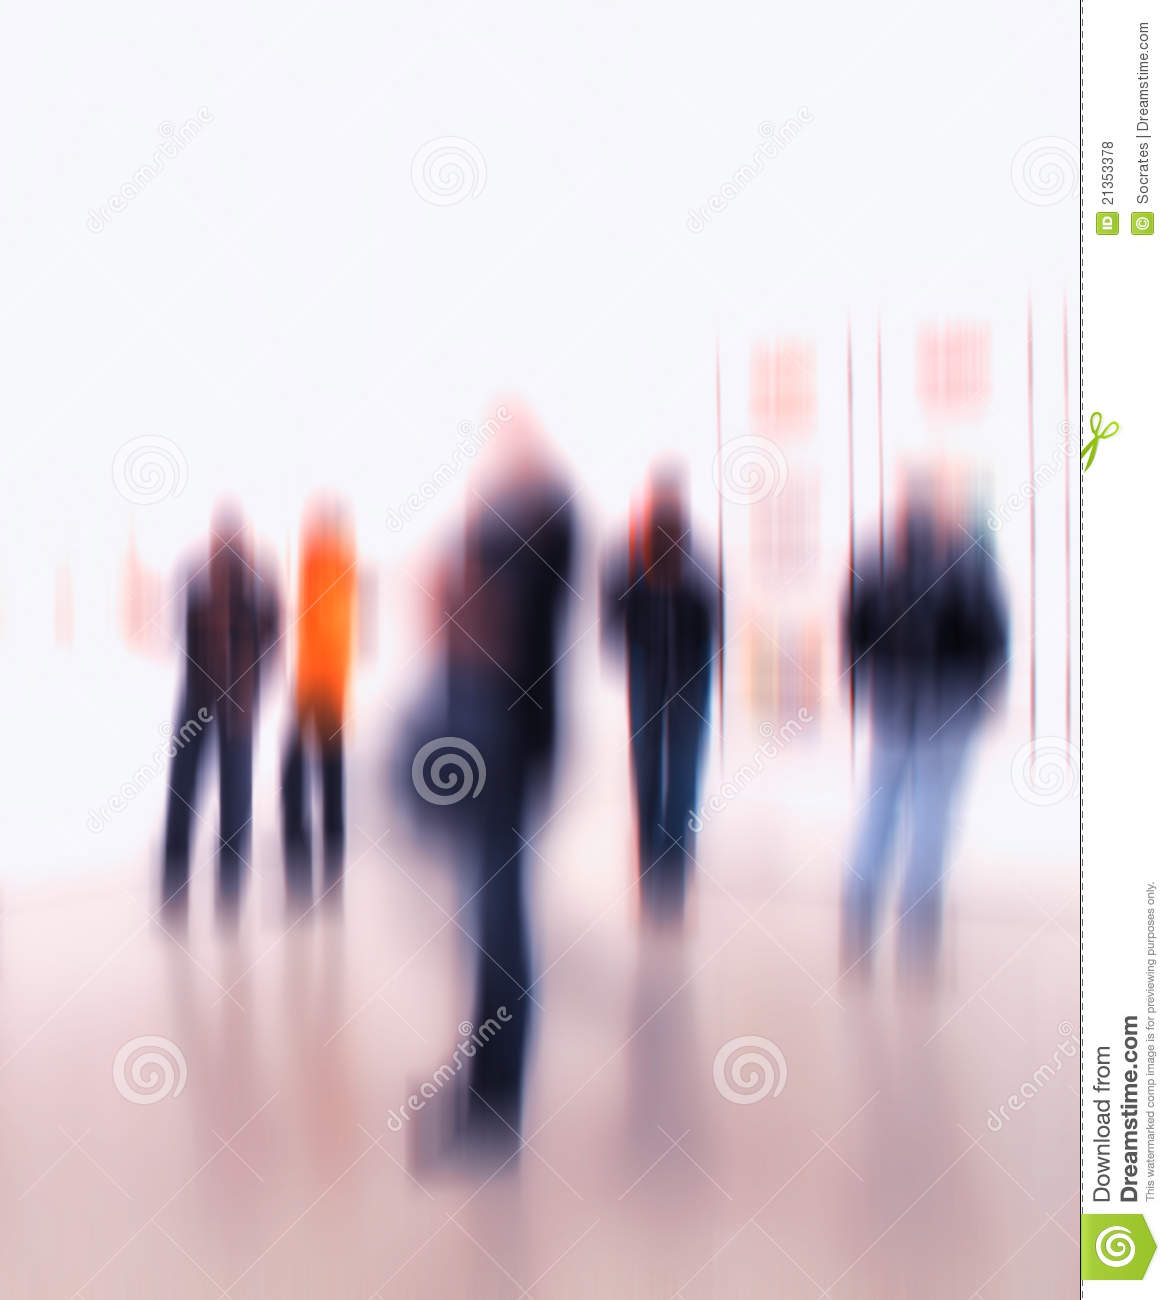 Blurred People Royalty Free Stock Photos - Image: 21353378